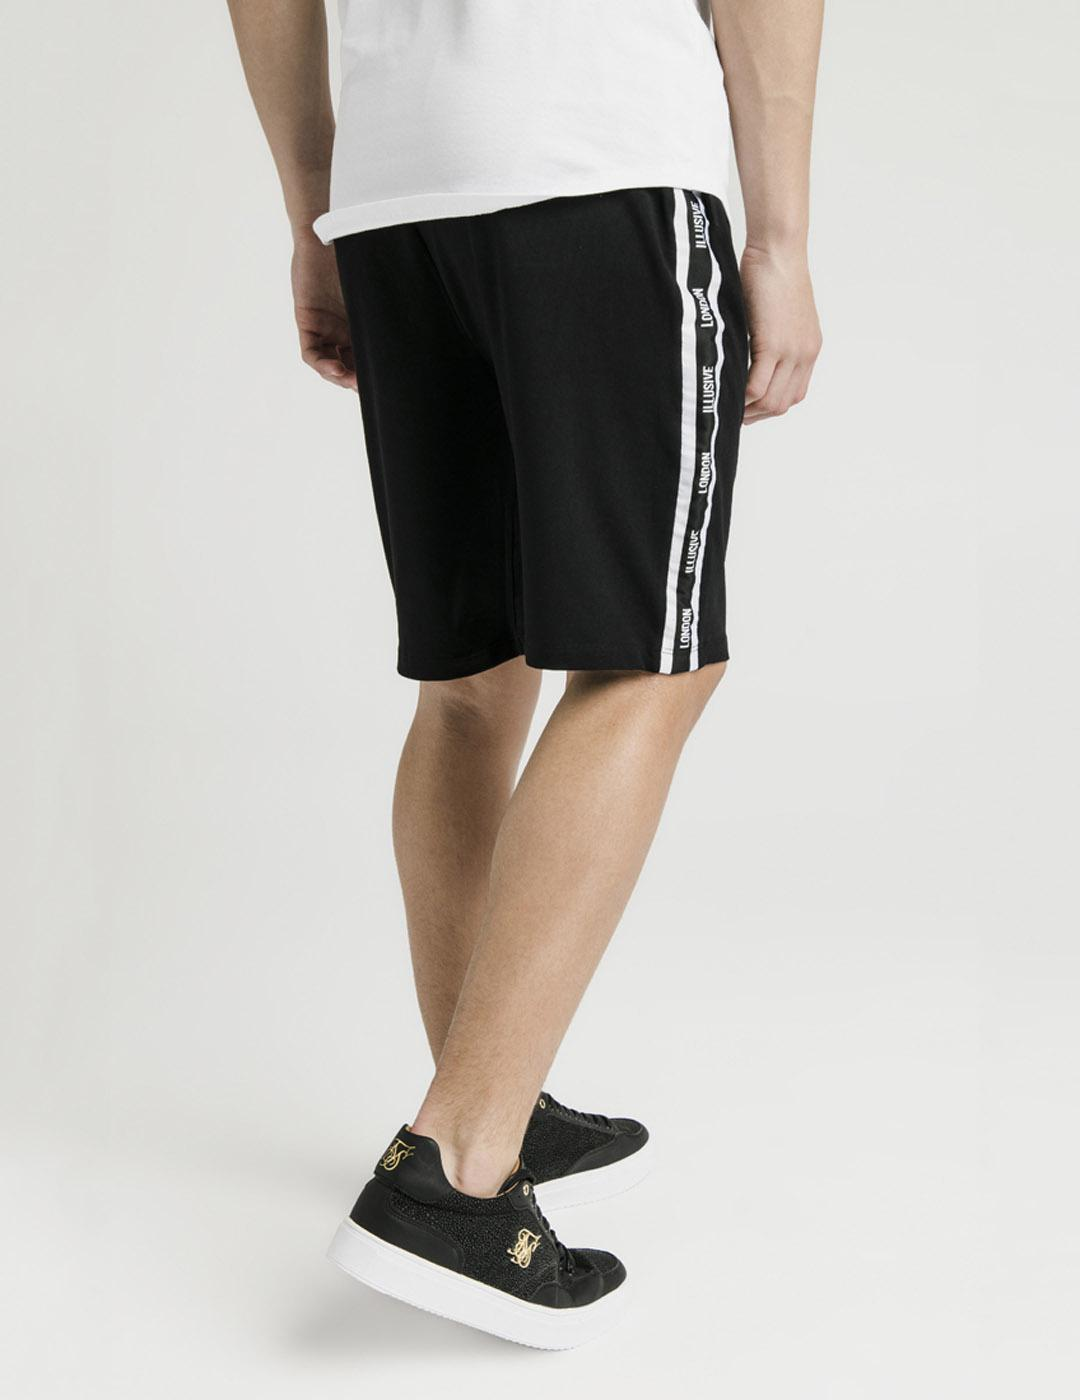 Bermuda Illusive London JERSEY SHORTS - Black white